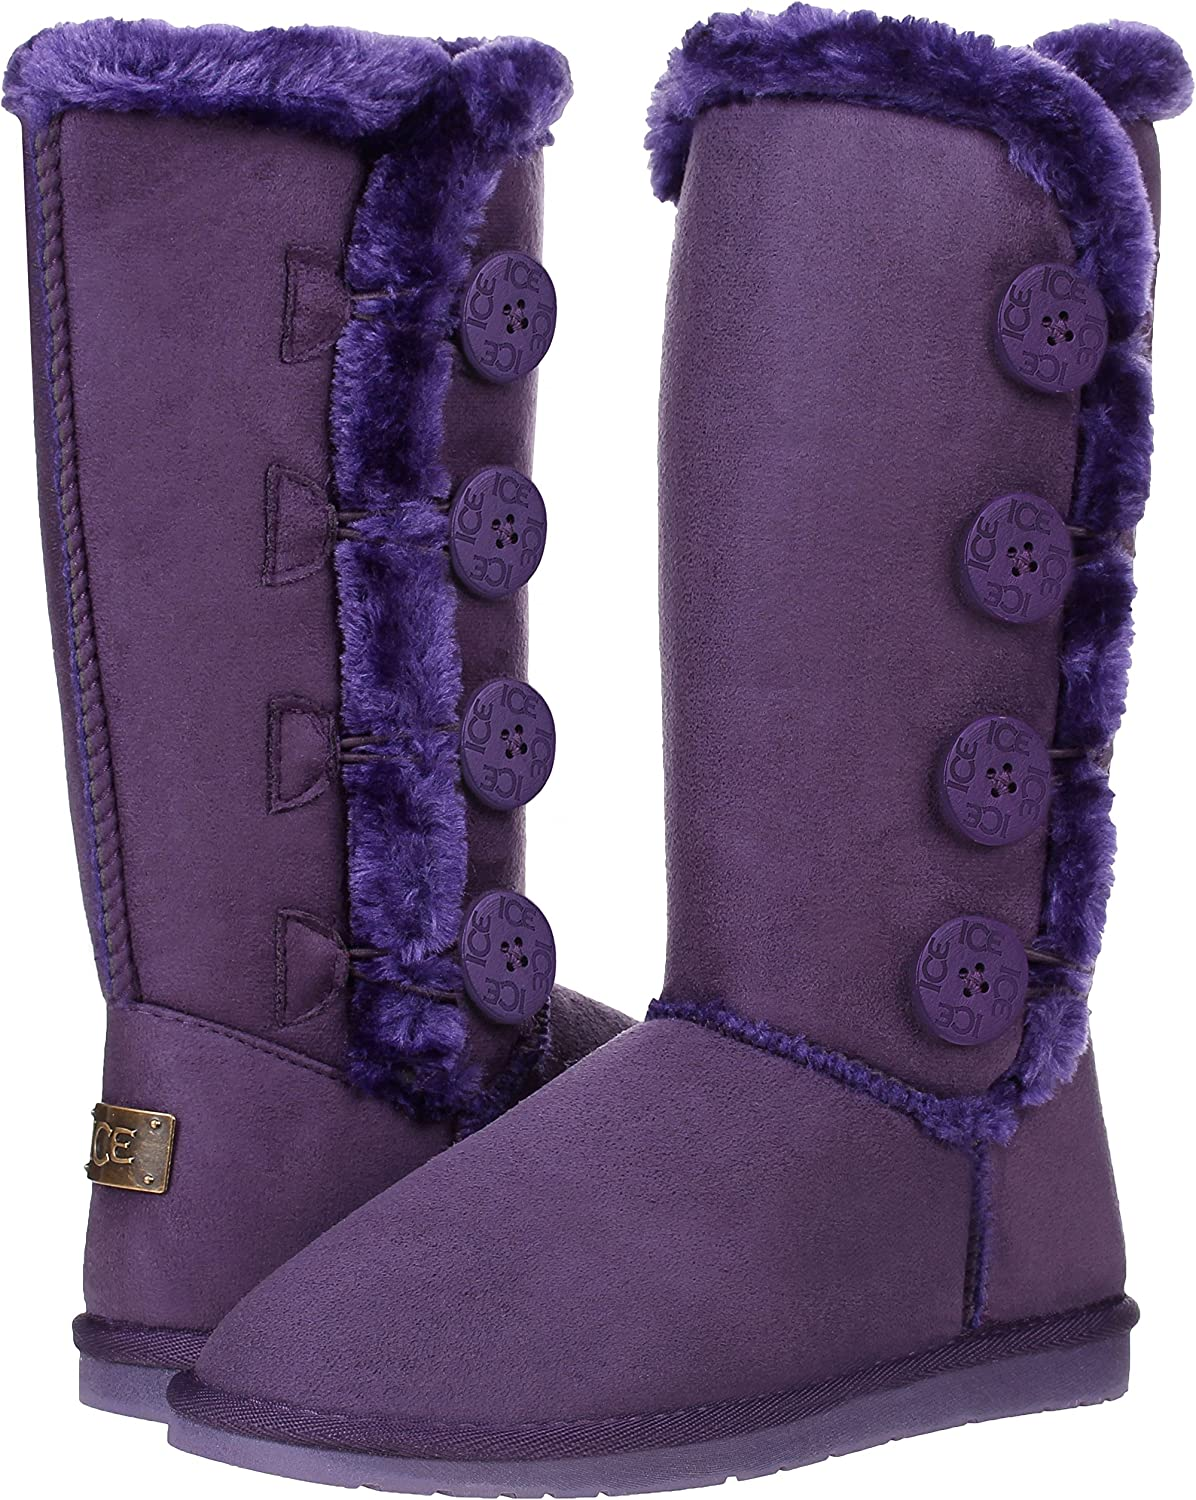 CLOVERLAY Women's Four Button Faux Fur Lined Shearling Mid Calf Winter Boots